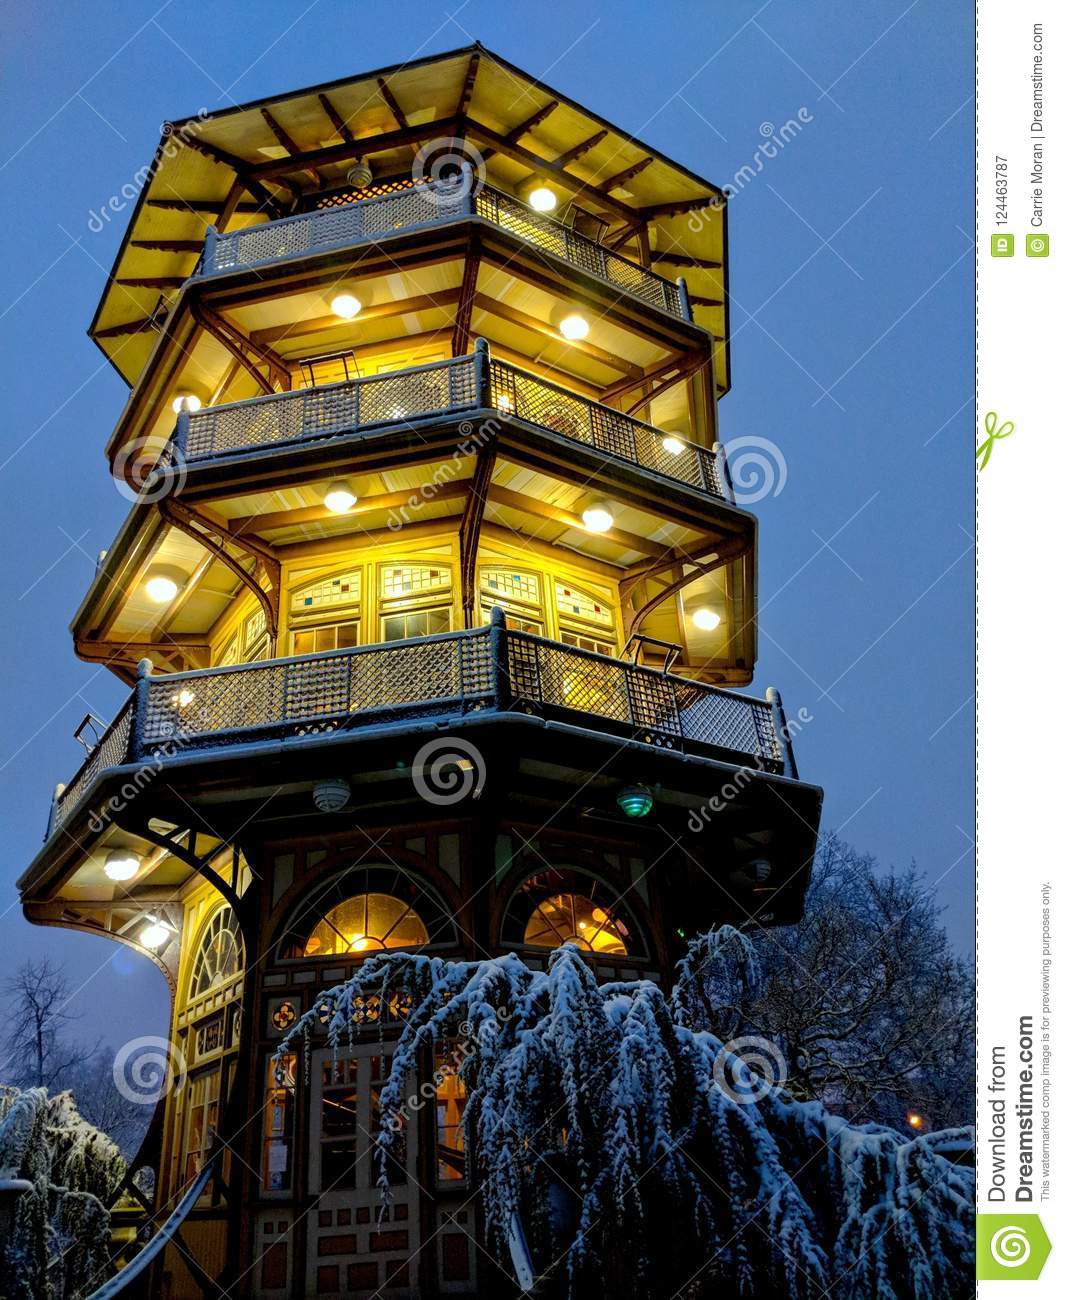 Patterson Park Pagoda on a snowy night in Baltimore